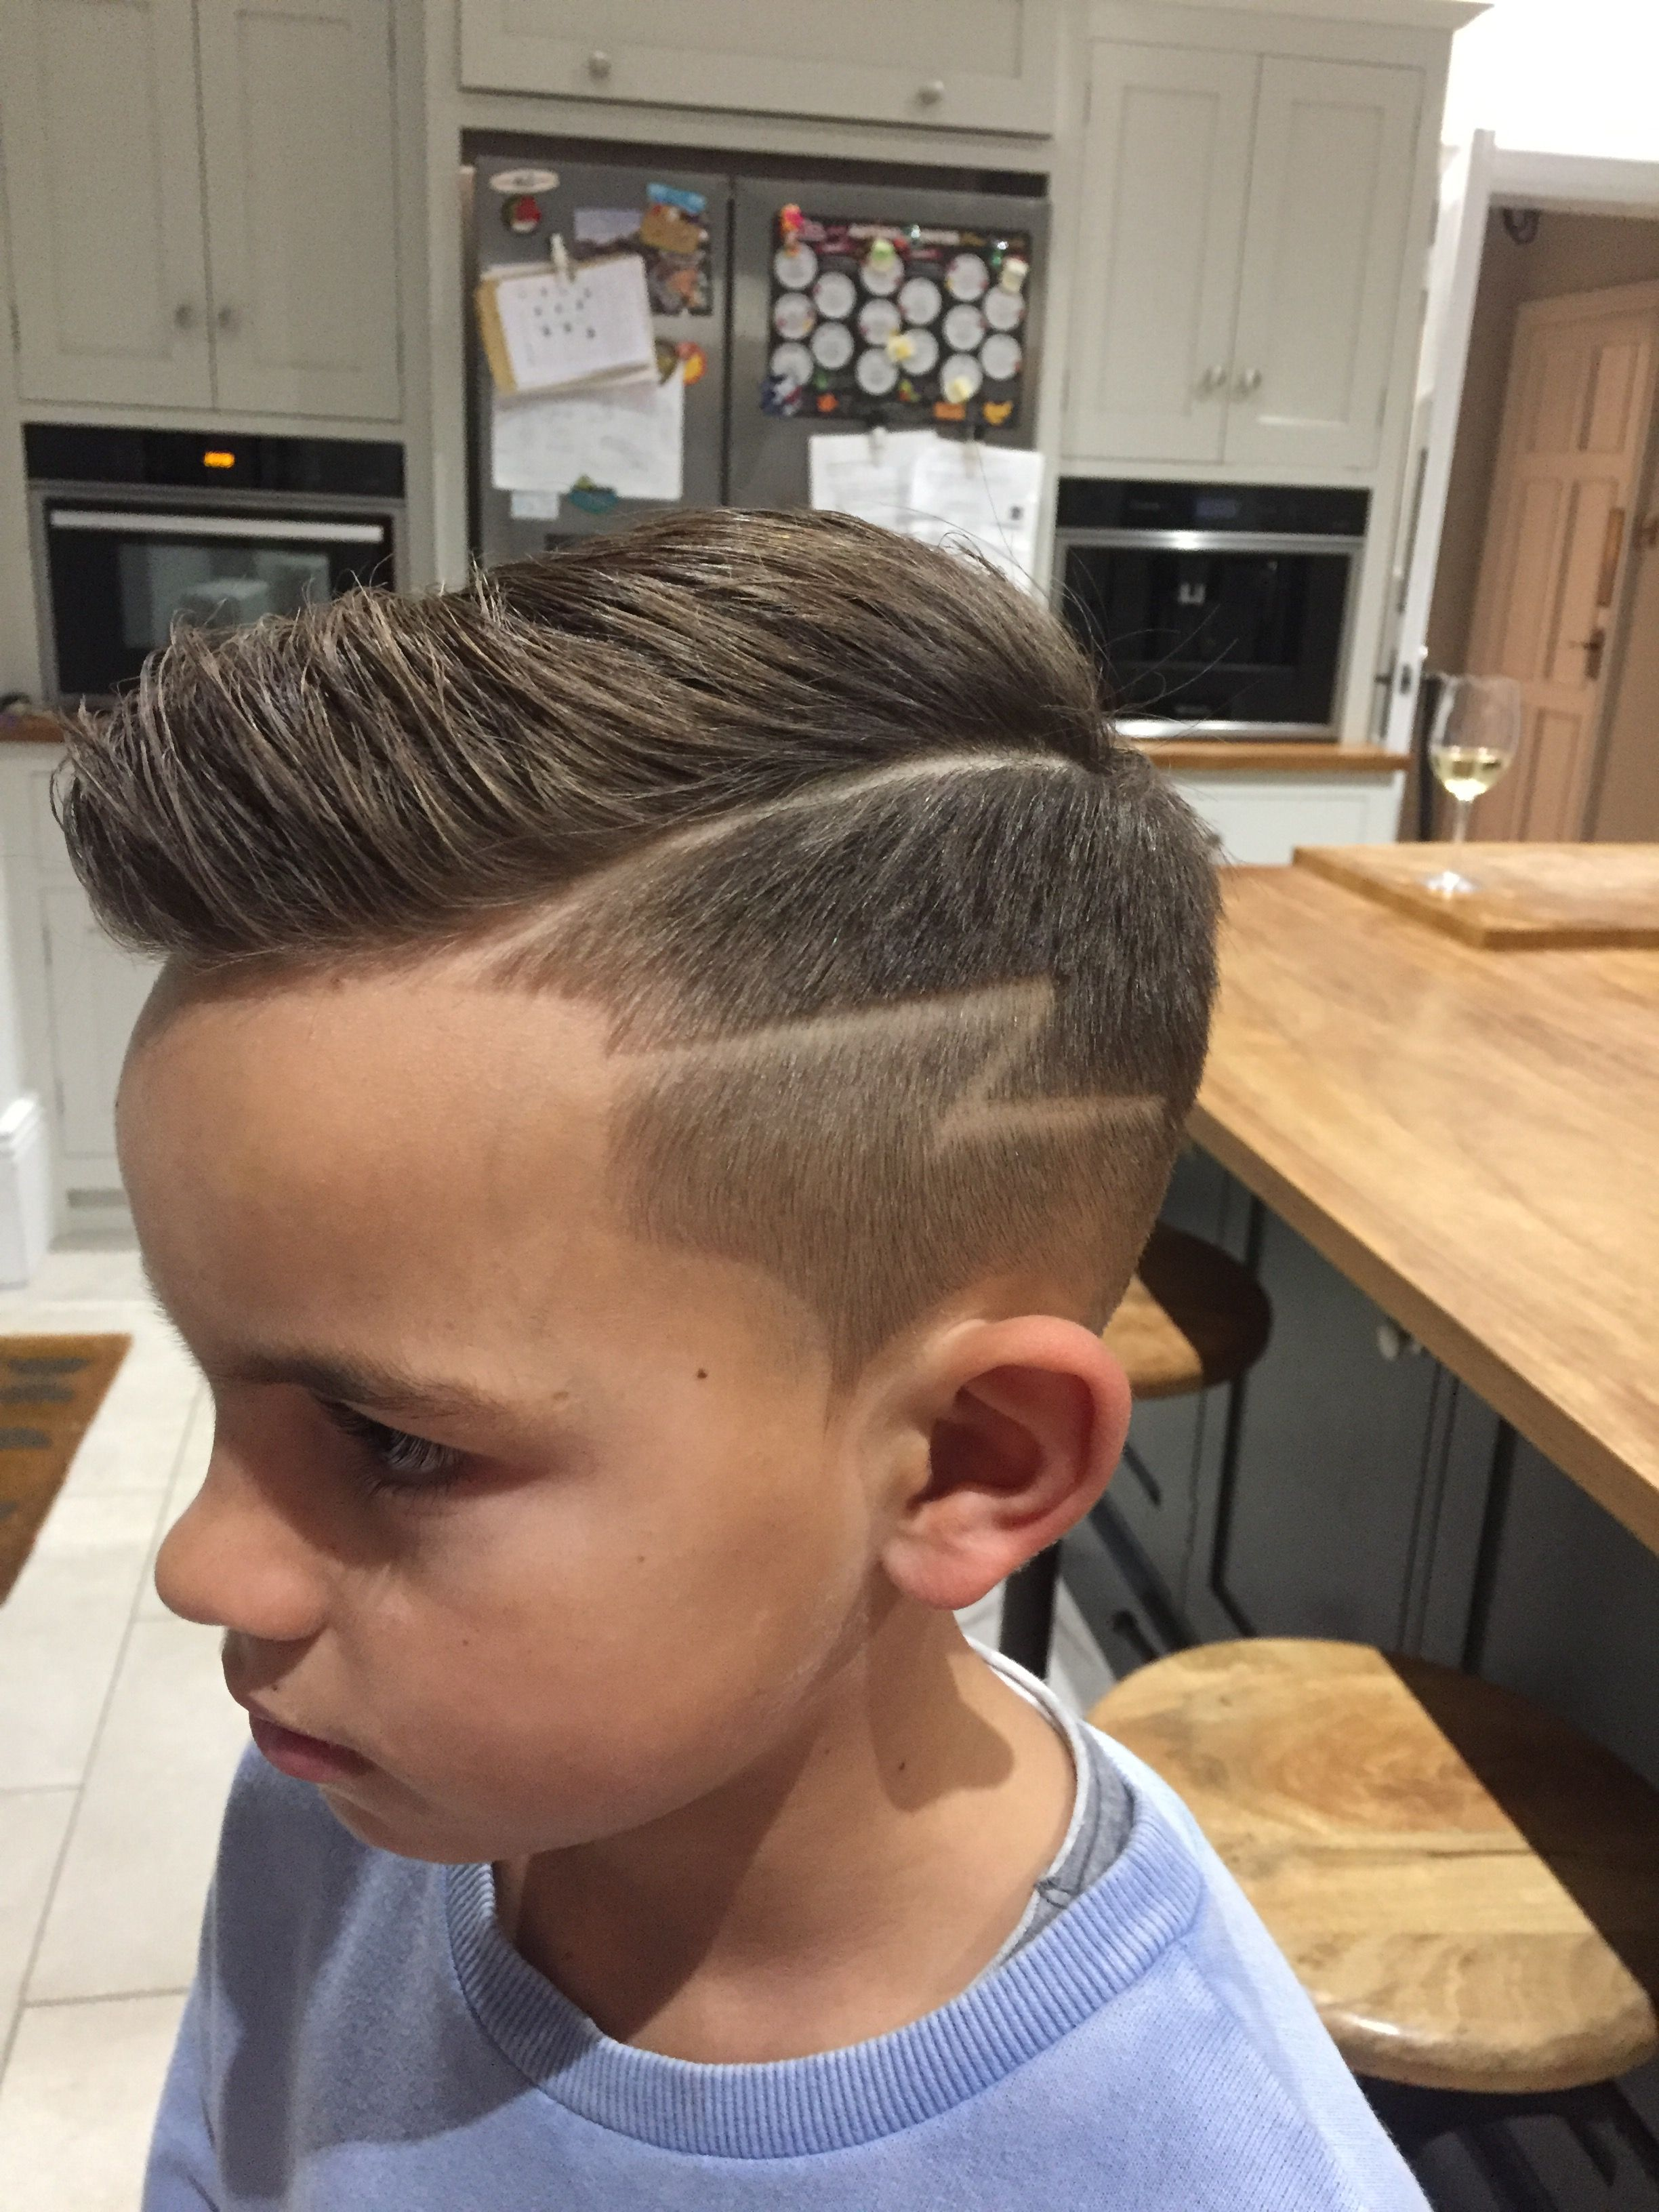 boys haircut with lightning bolt design. #boyshaircut